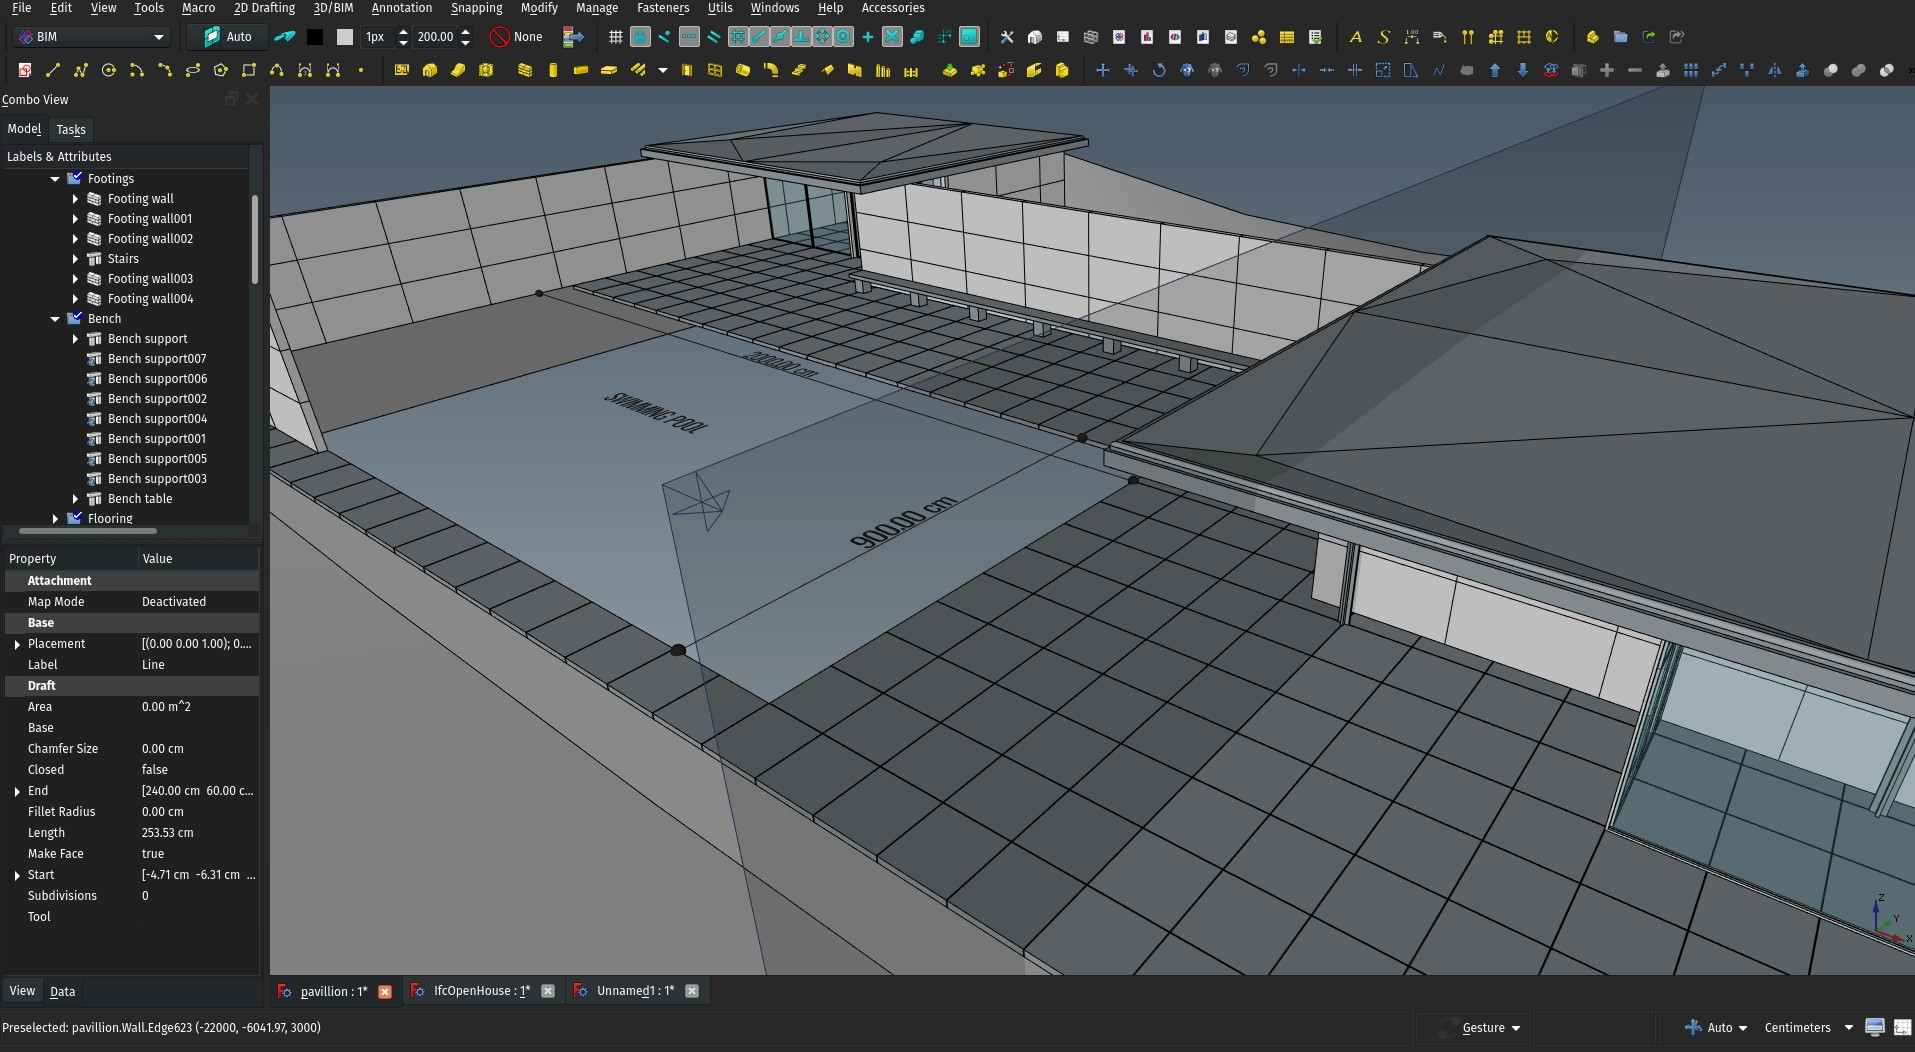 Screenshot of FreeCAD with the Pavillion model open